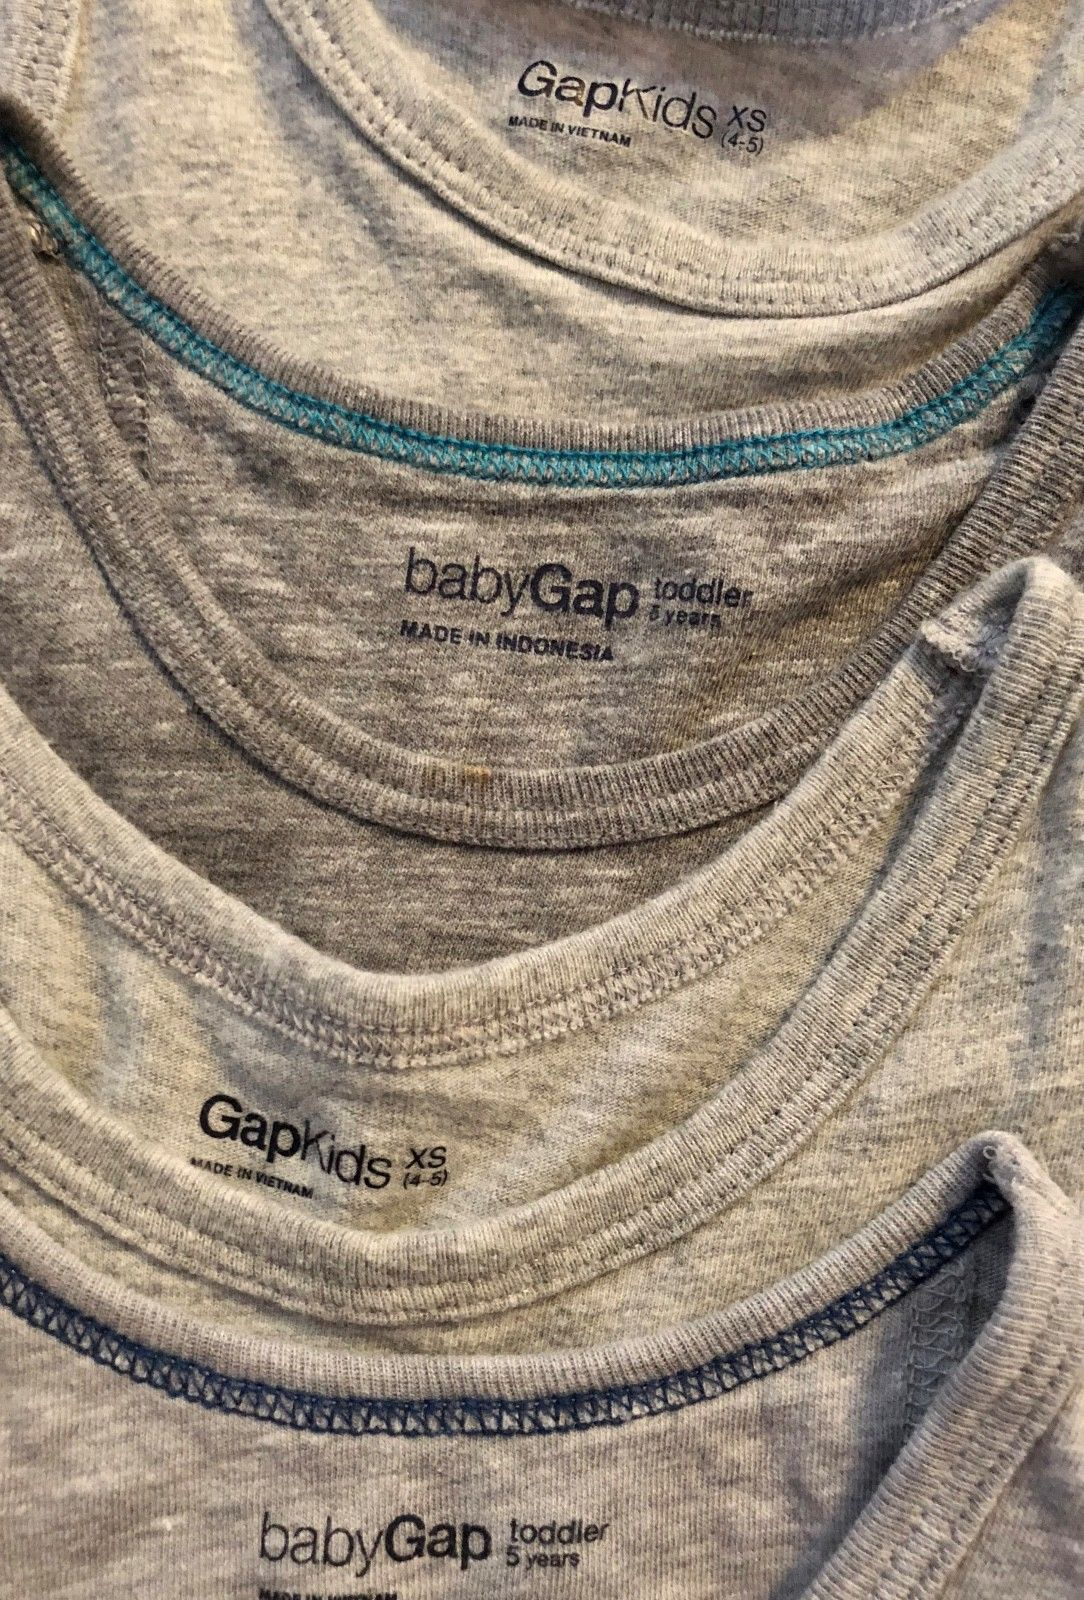 BABY GAP Tank Top + Knit Pull On Shorts Lot of 7 - Summer Outfits Blue Gray Red image 7